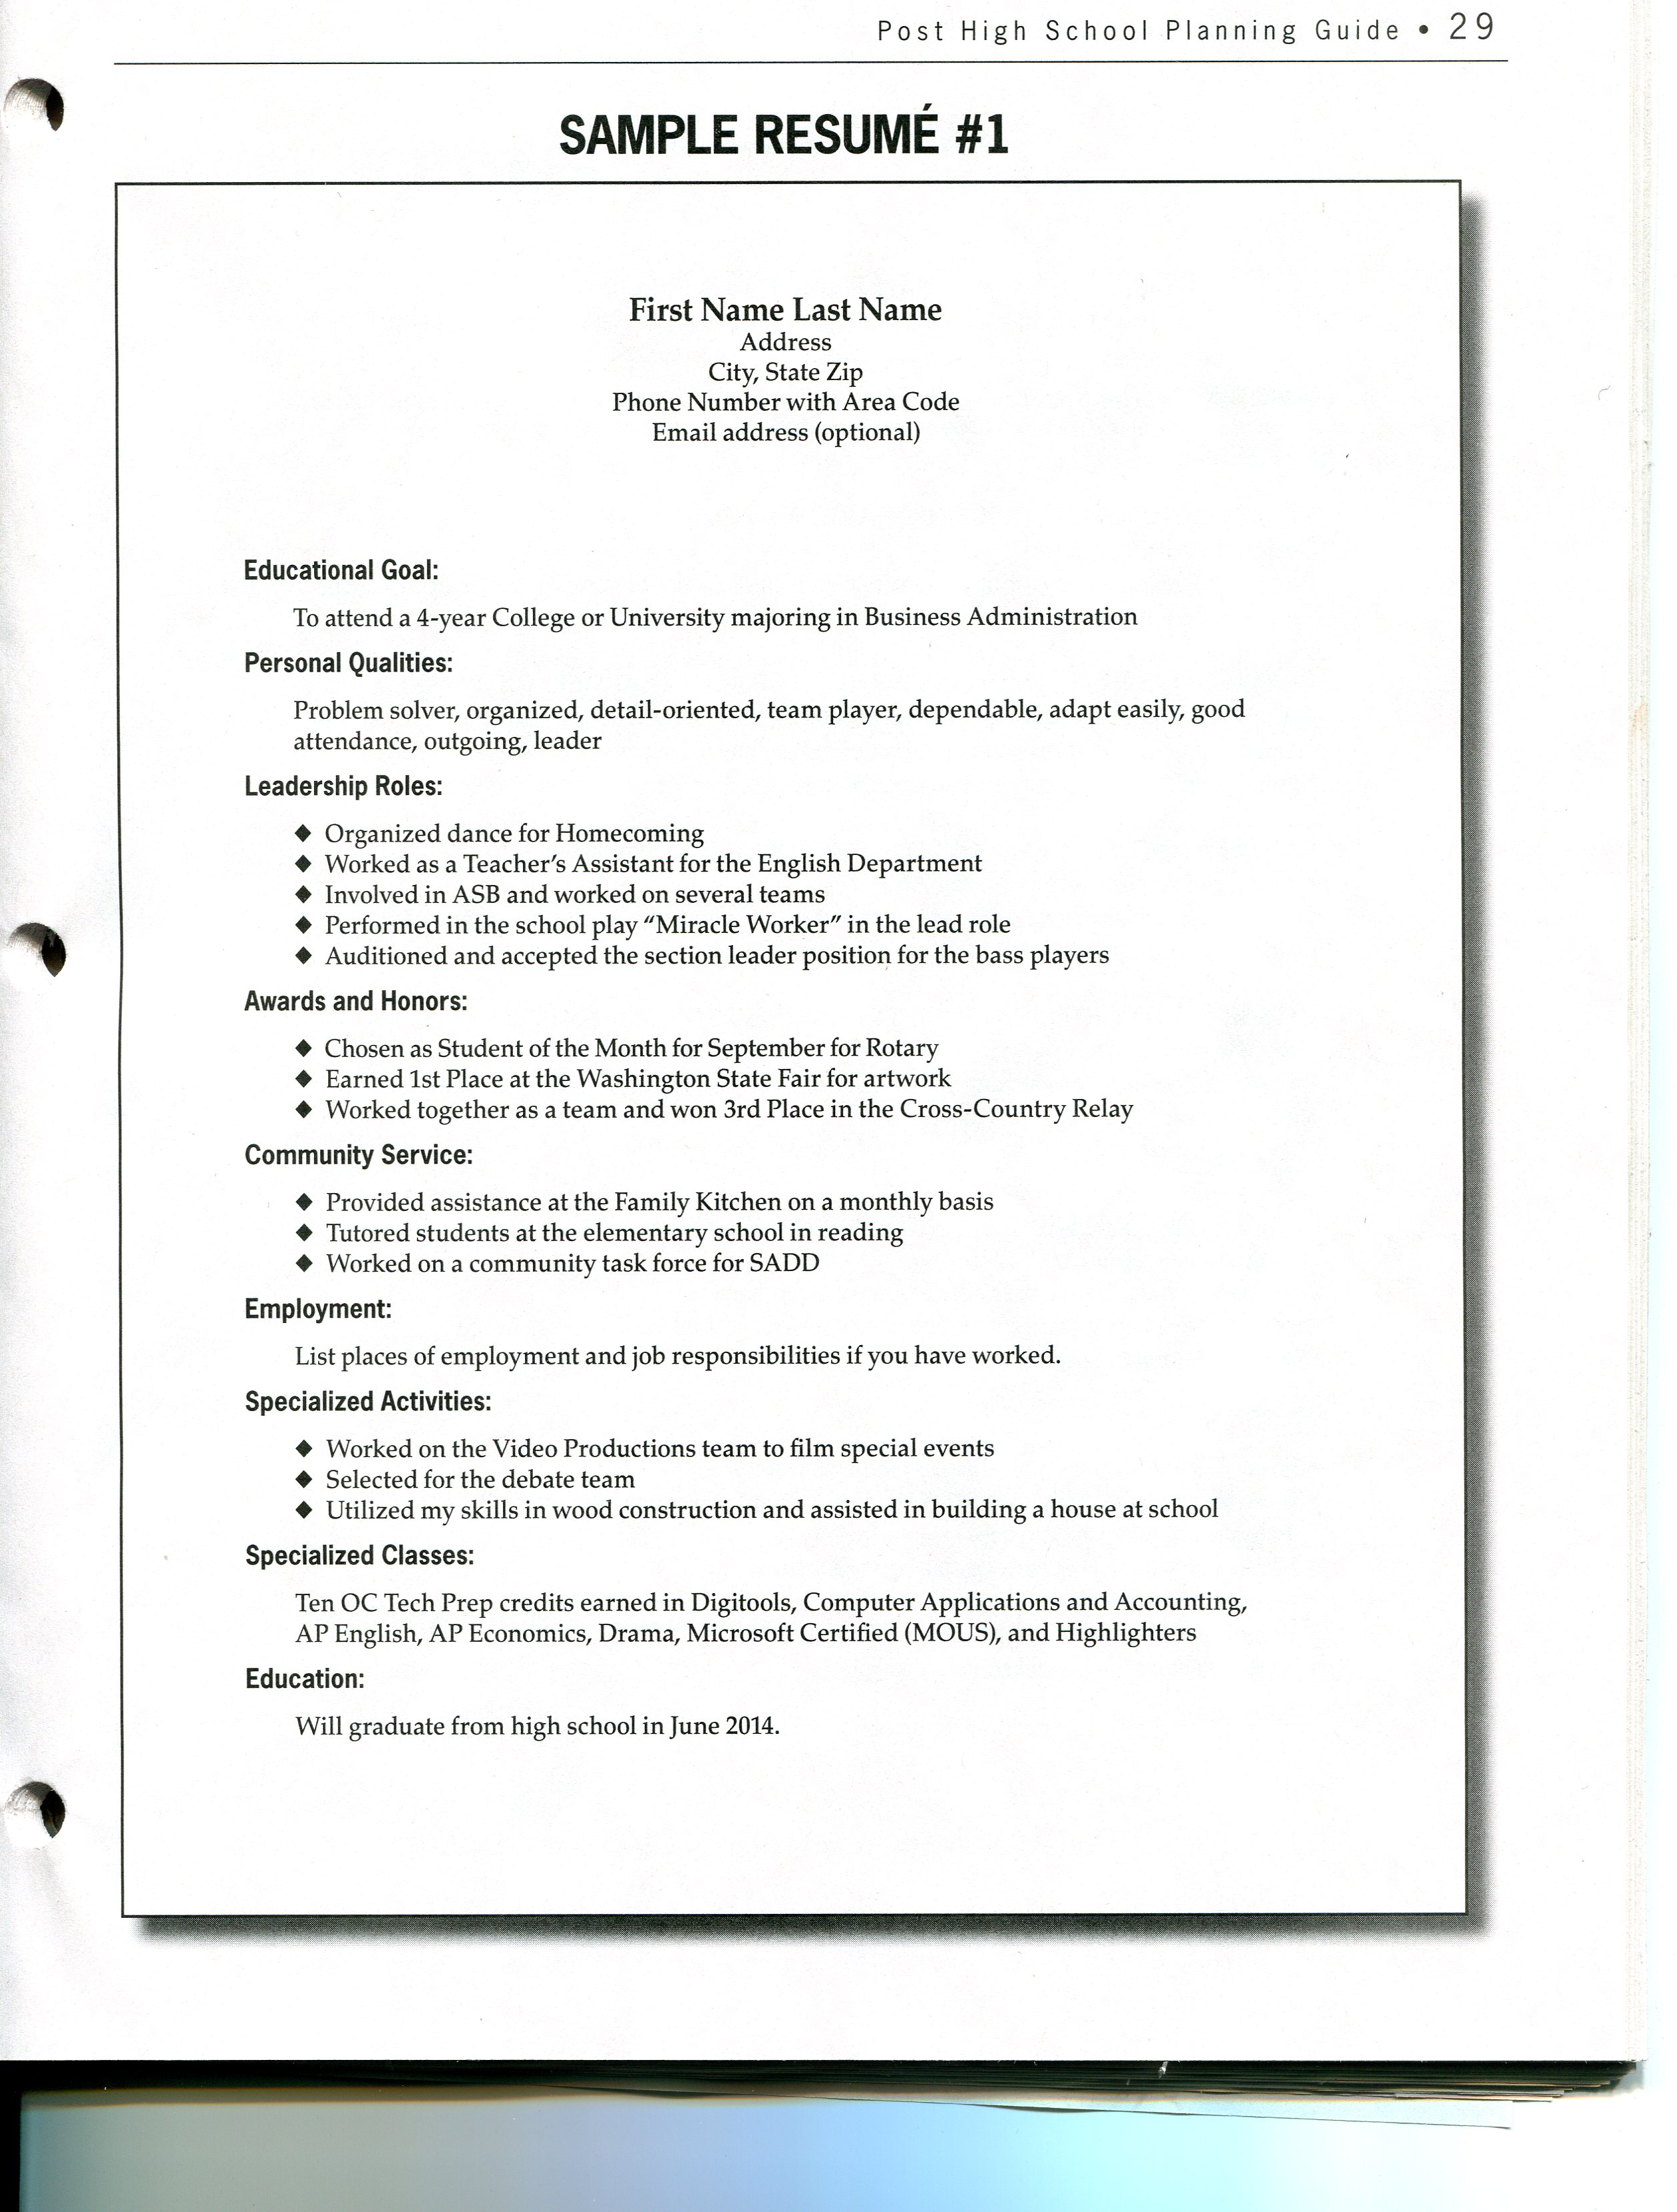 sample resume of admin executive in india professional resumes